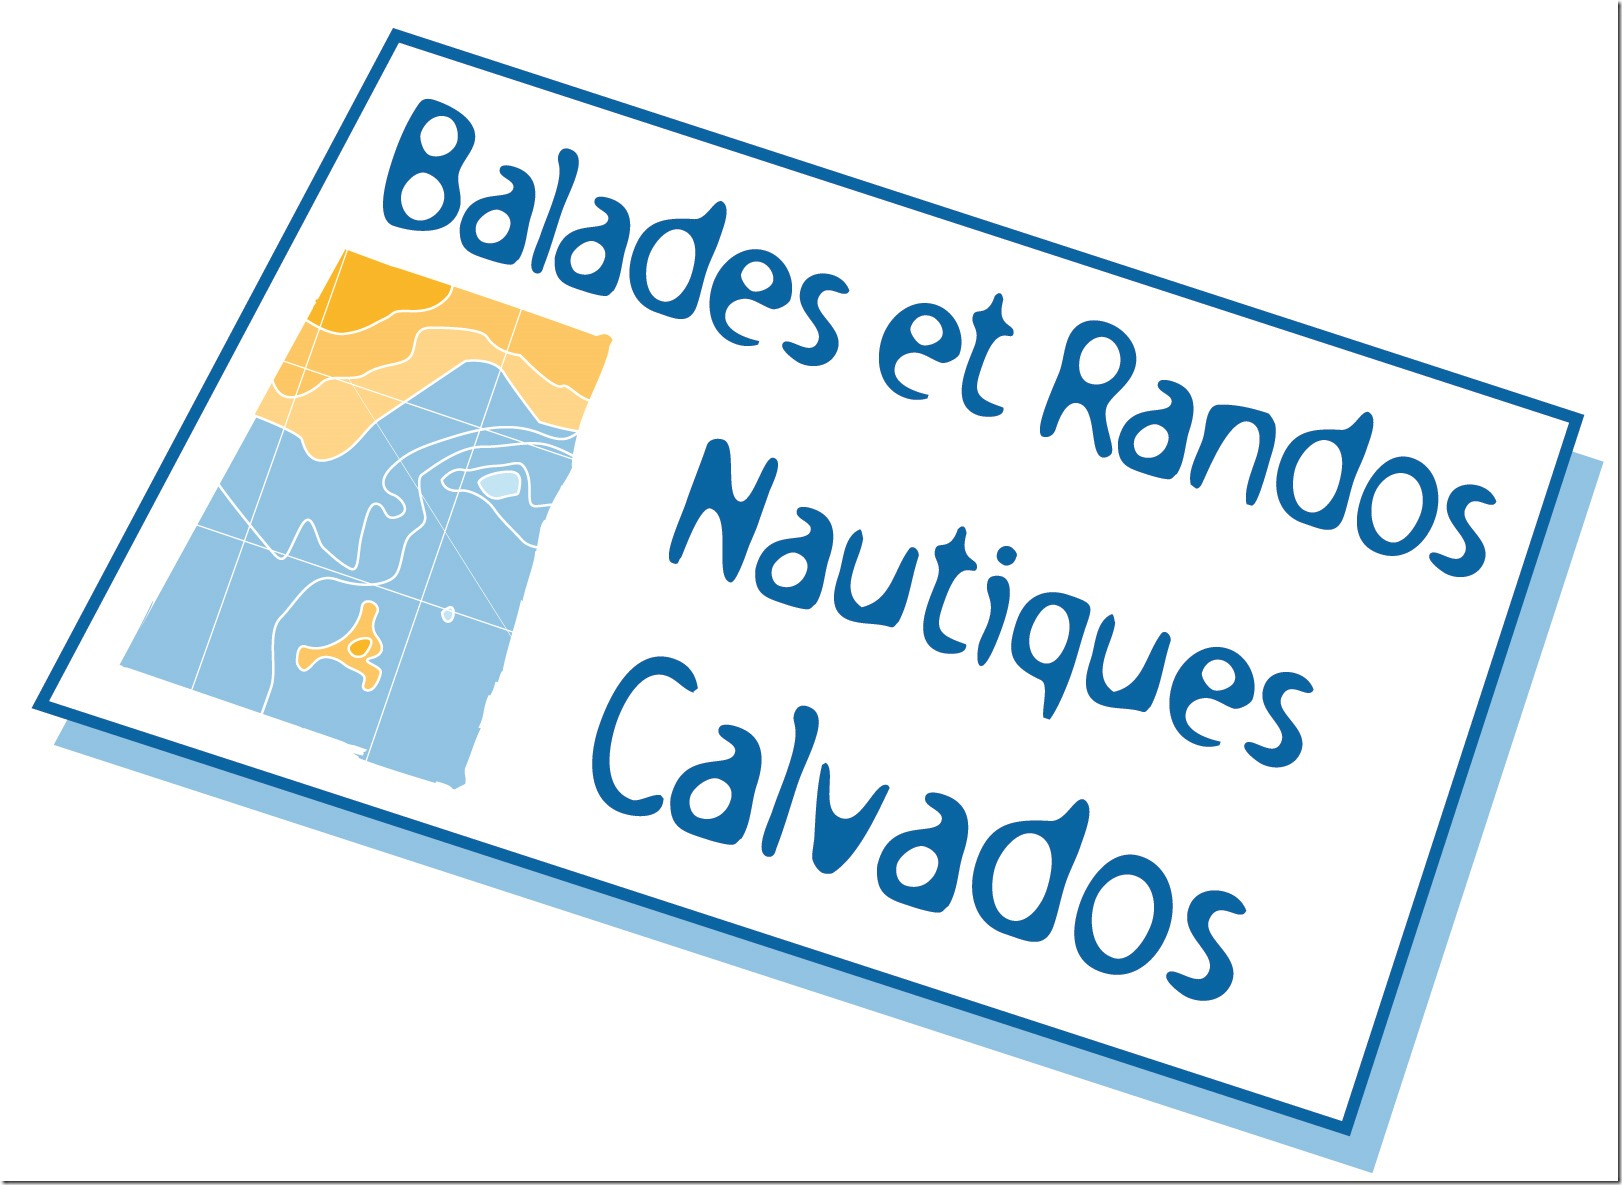 LOGO BALADE ET RANDO CALVADOS